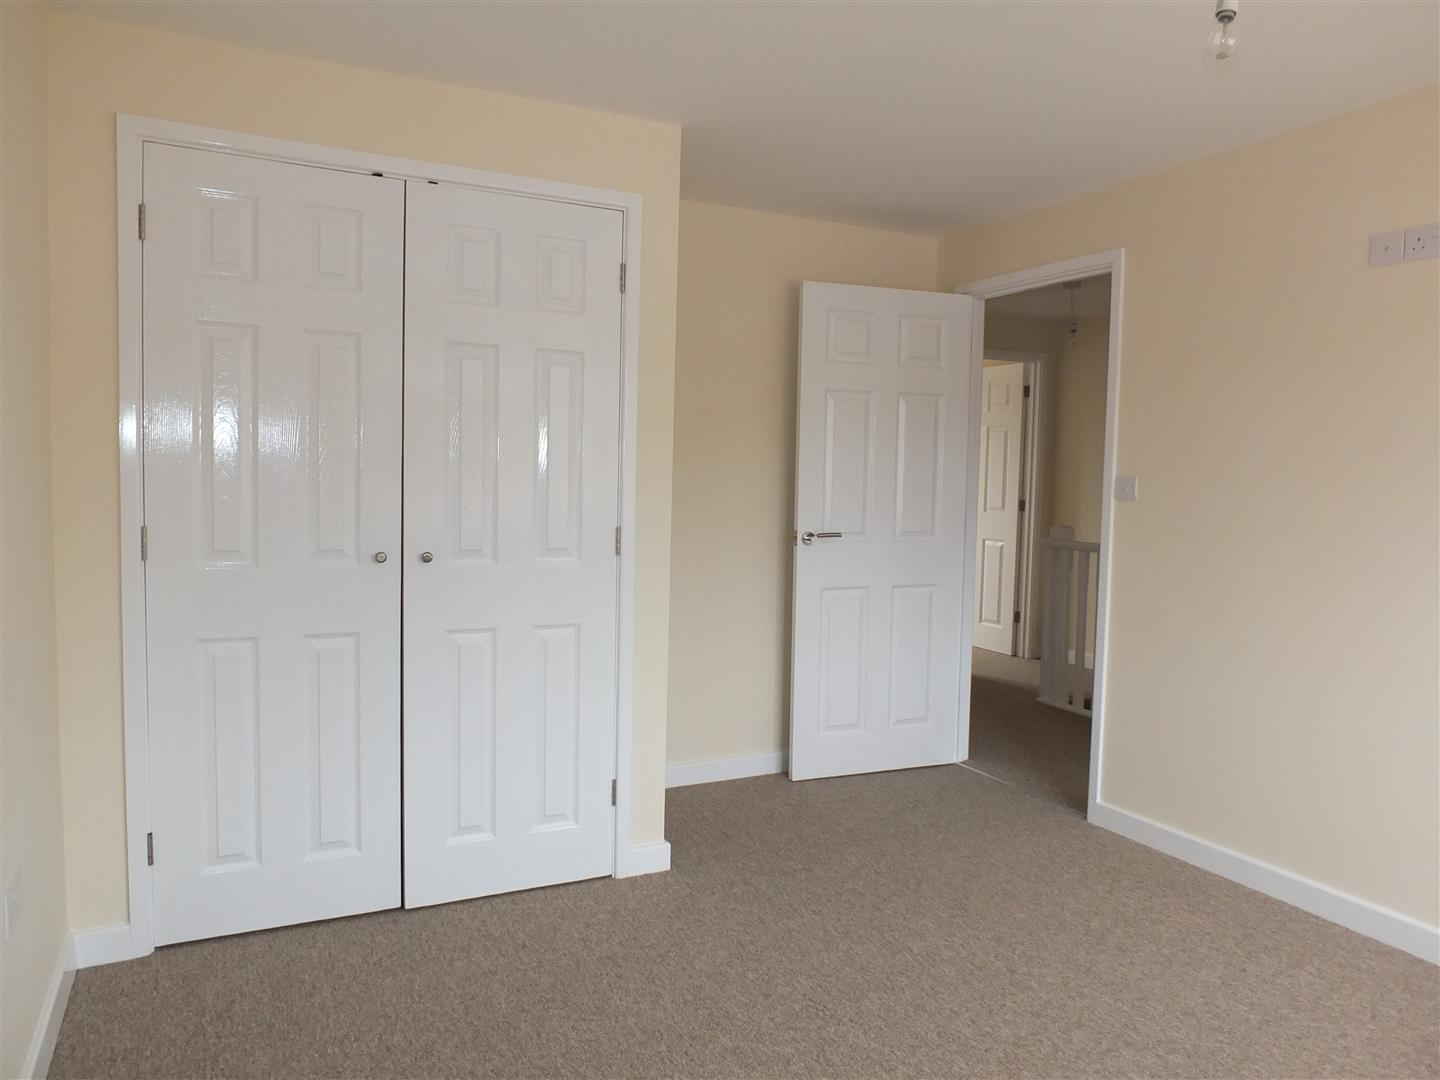 3 bed house to rent in Little London, Long Sutton  - Property Image 3